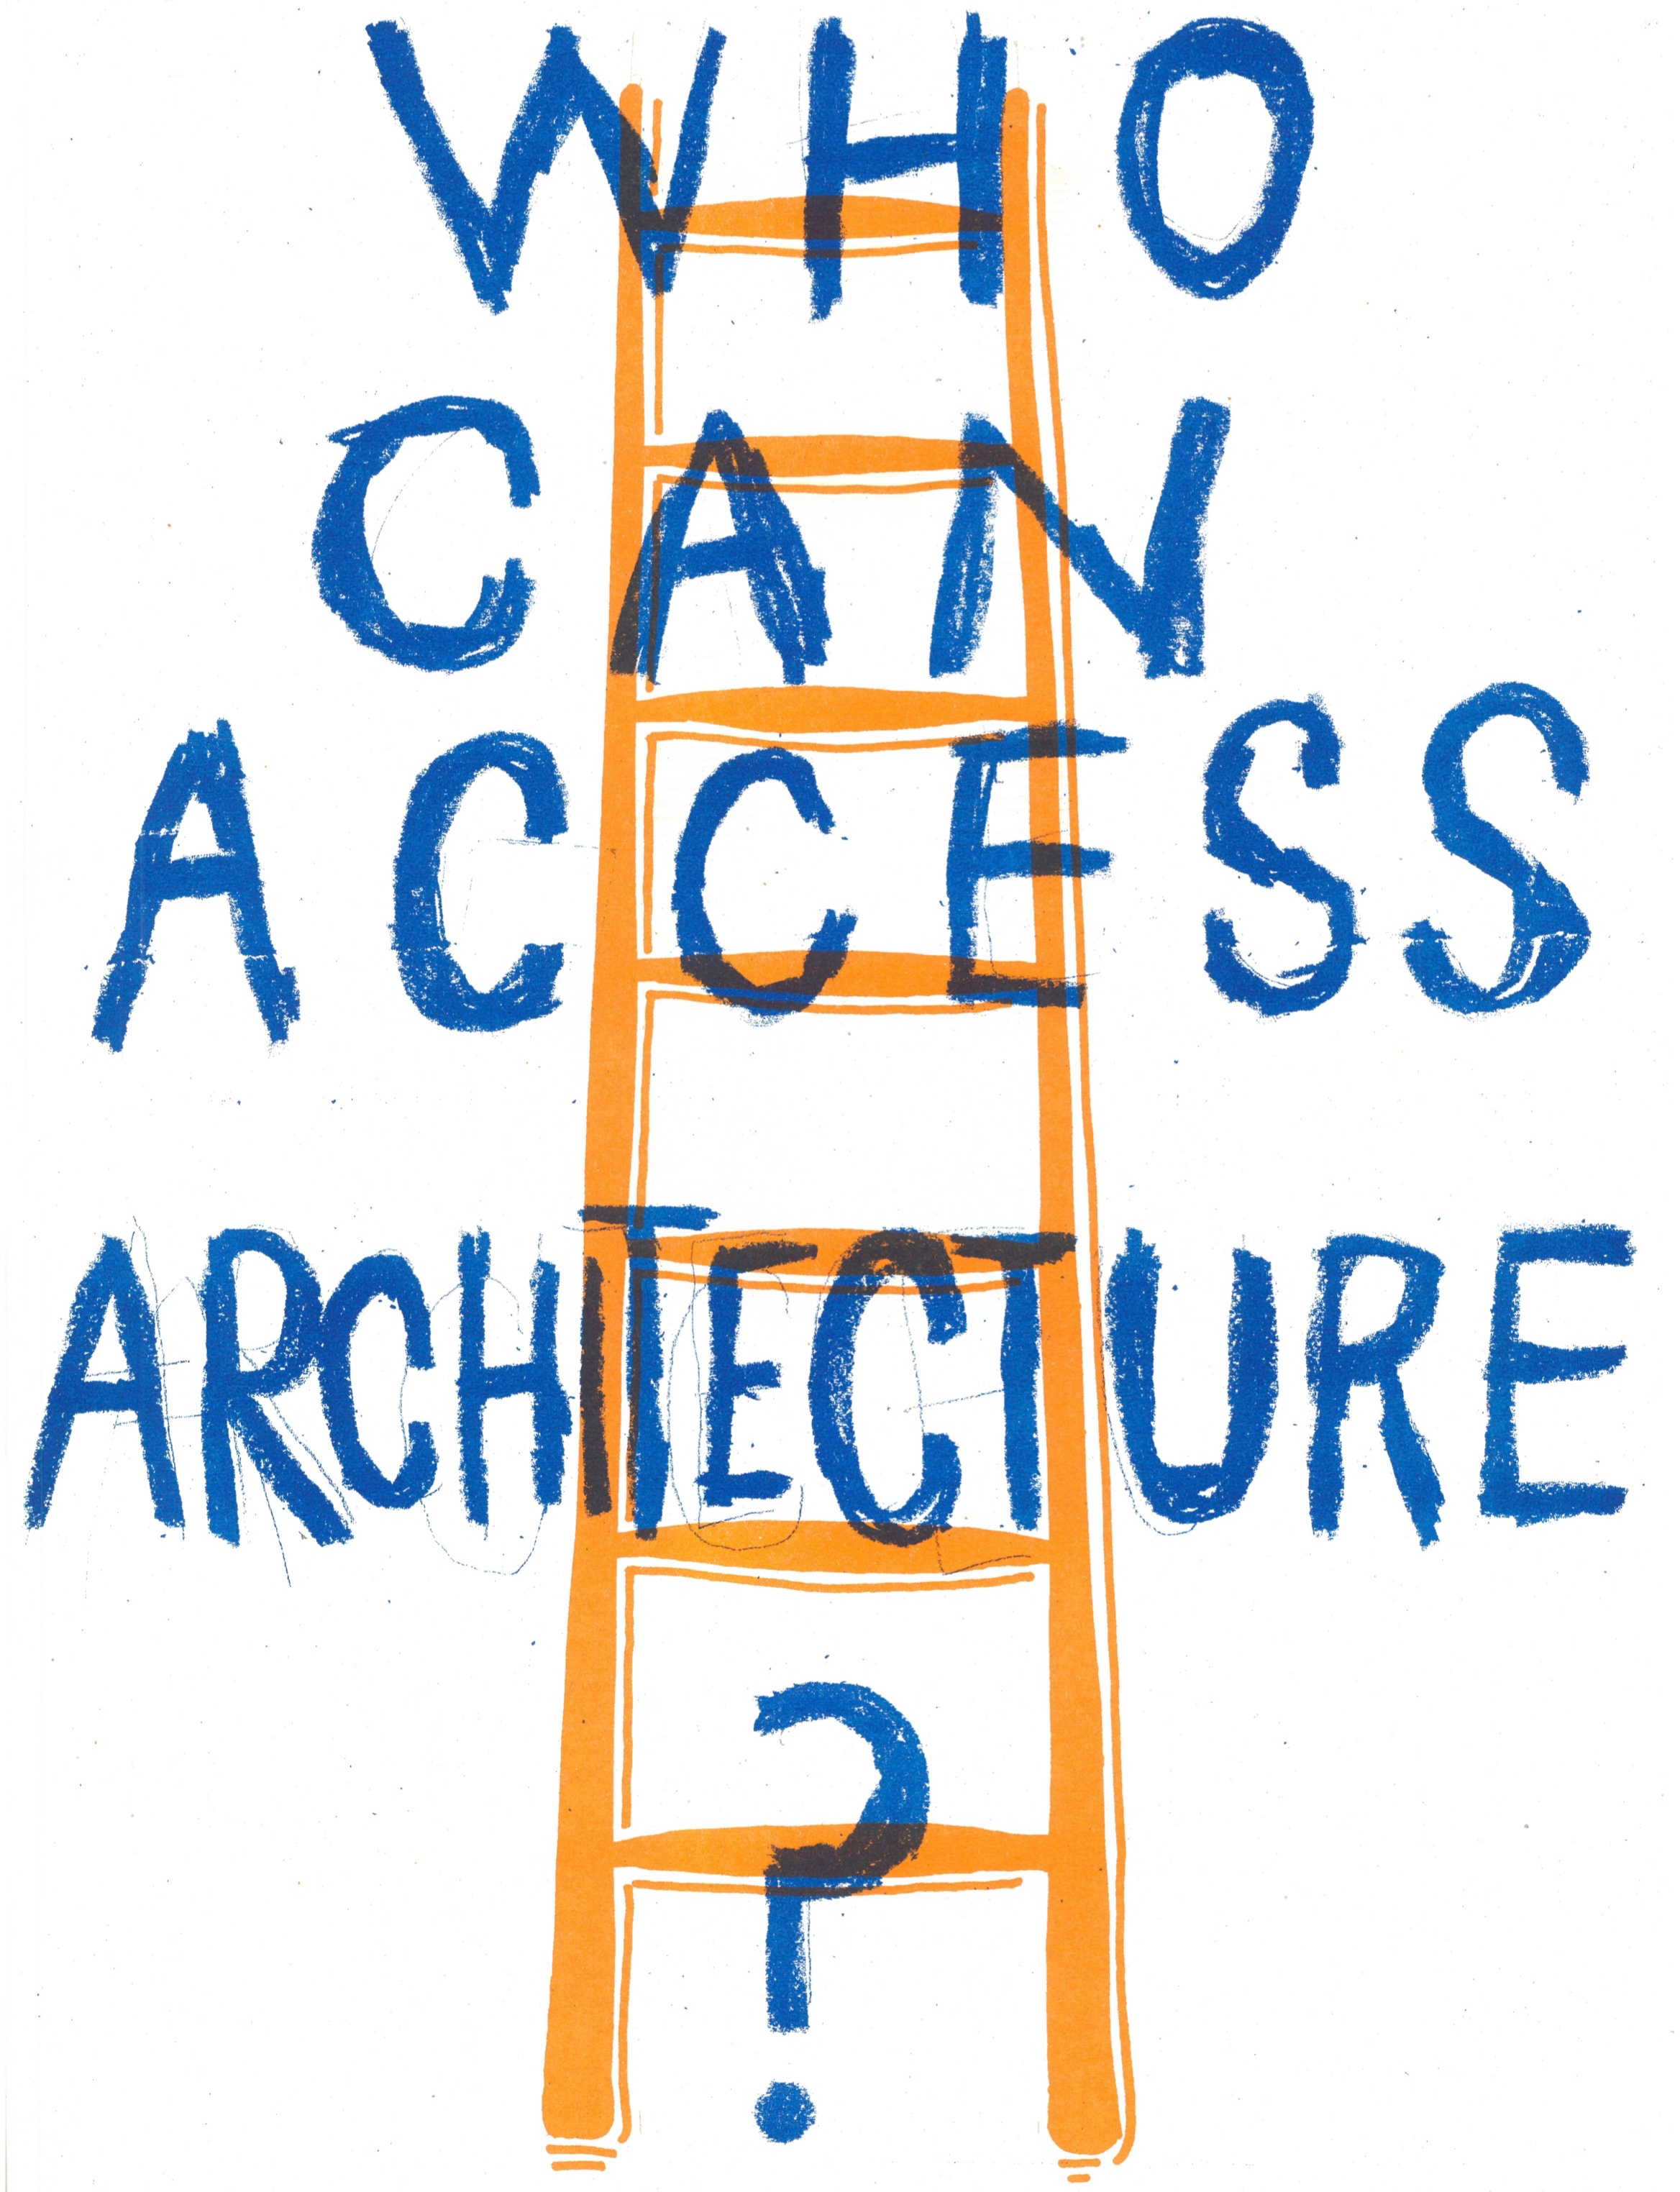 Figure 2.   A manifesto poster from union organizing efforts, n.d. Alternatively, who can teach in the architectural academy? Credit:  Workers' Inquiry: Architecture .